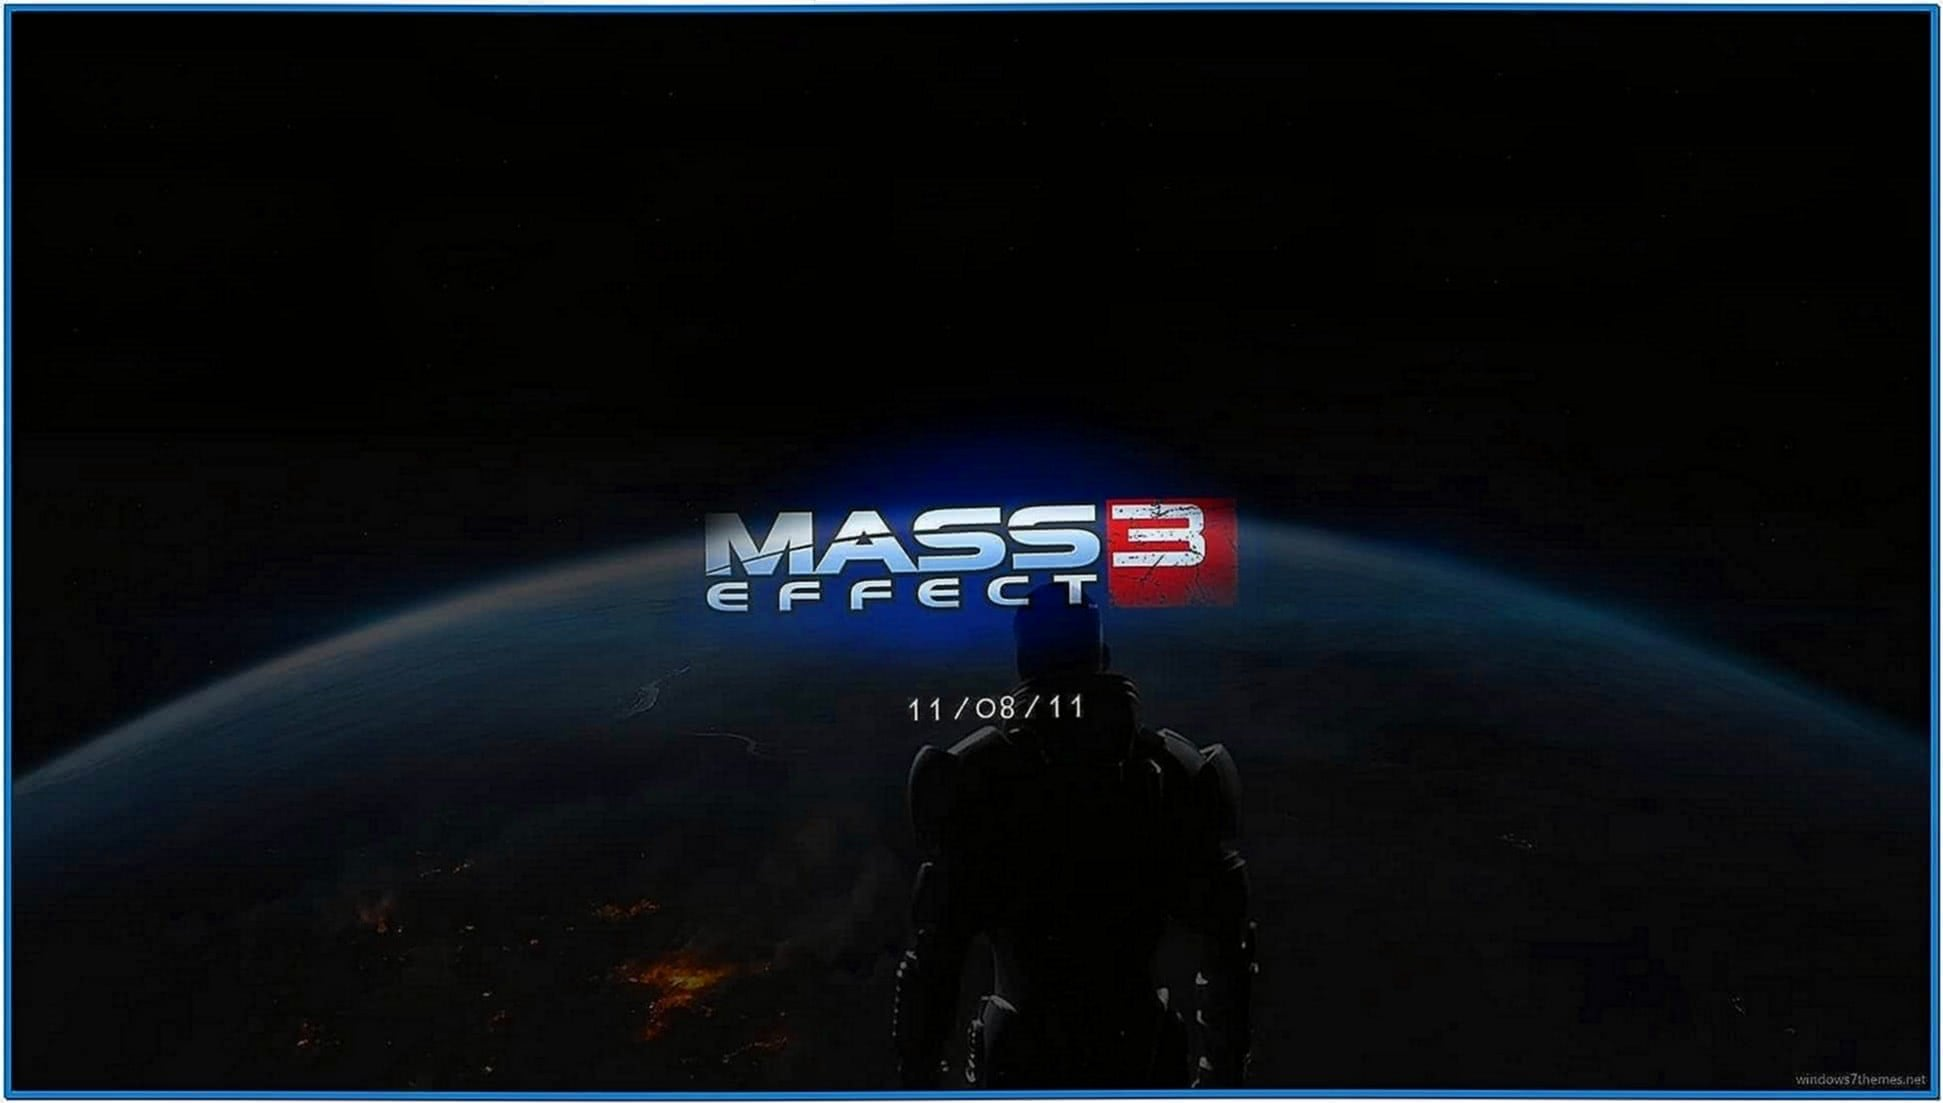 Mass Effect 3 Mac Screensaver